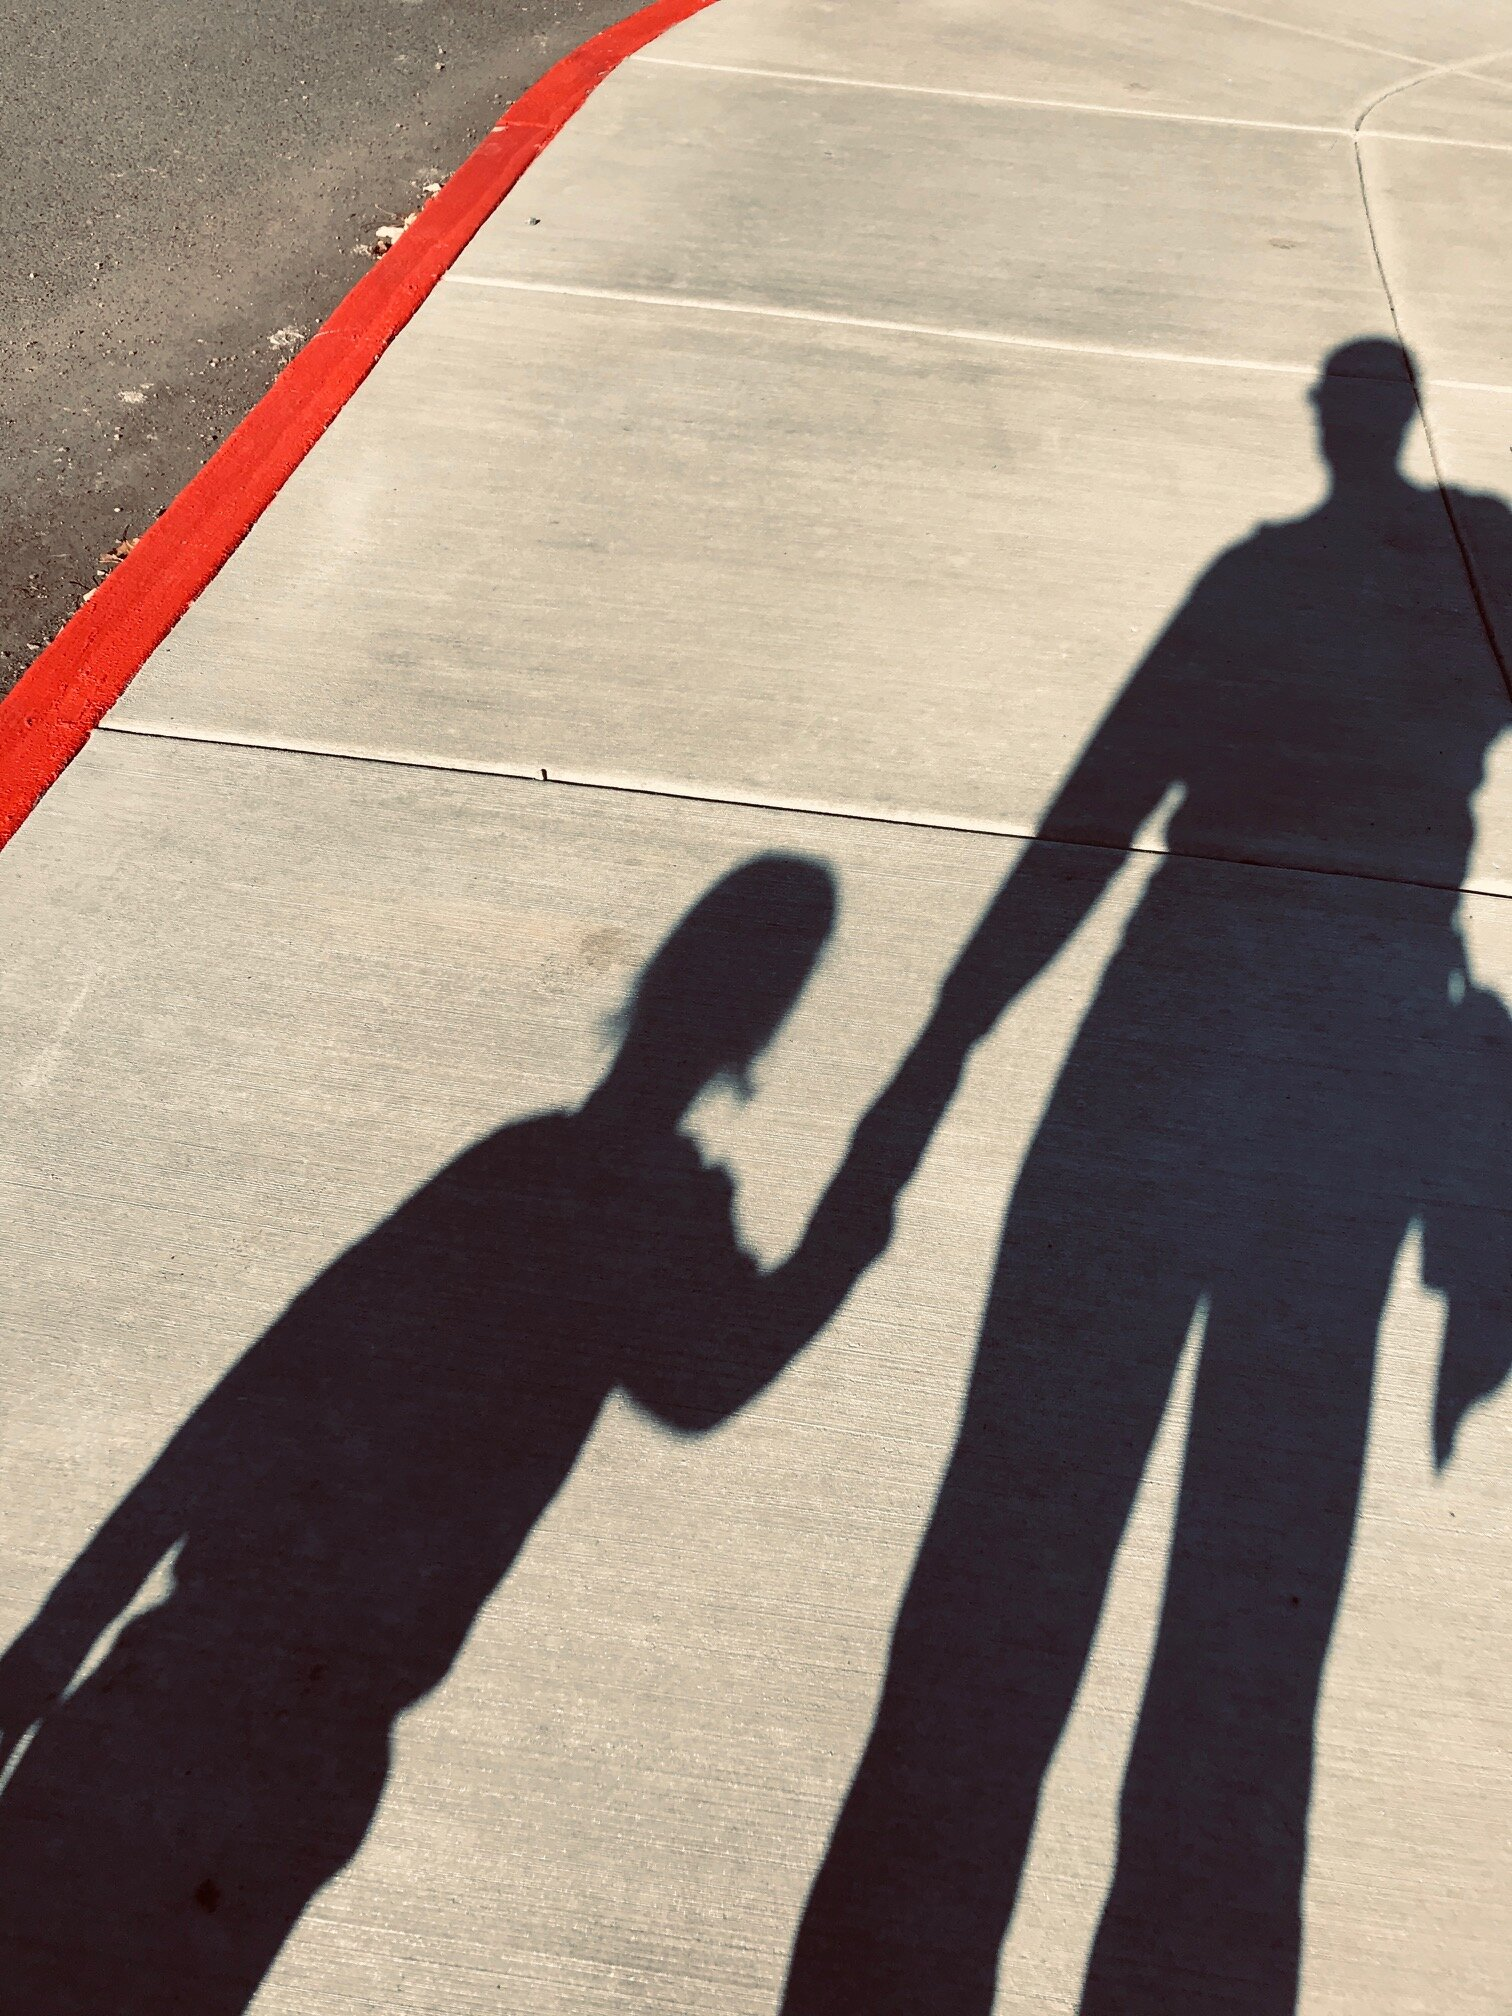 Shadow on sidewalk of dad holding young son's hand.